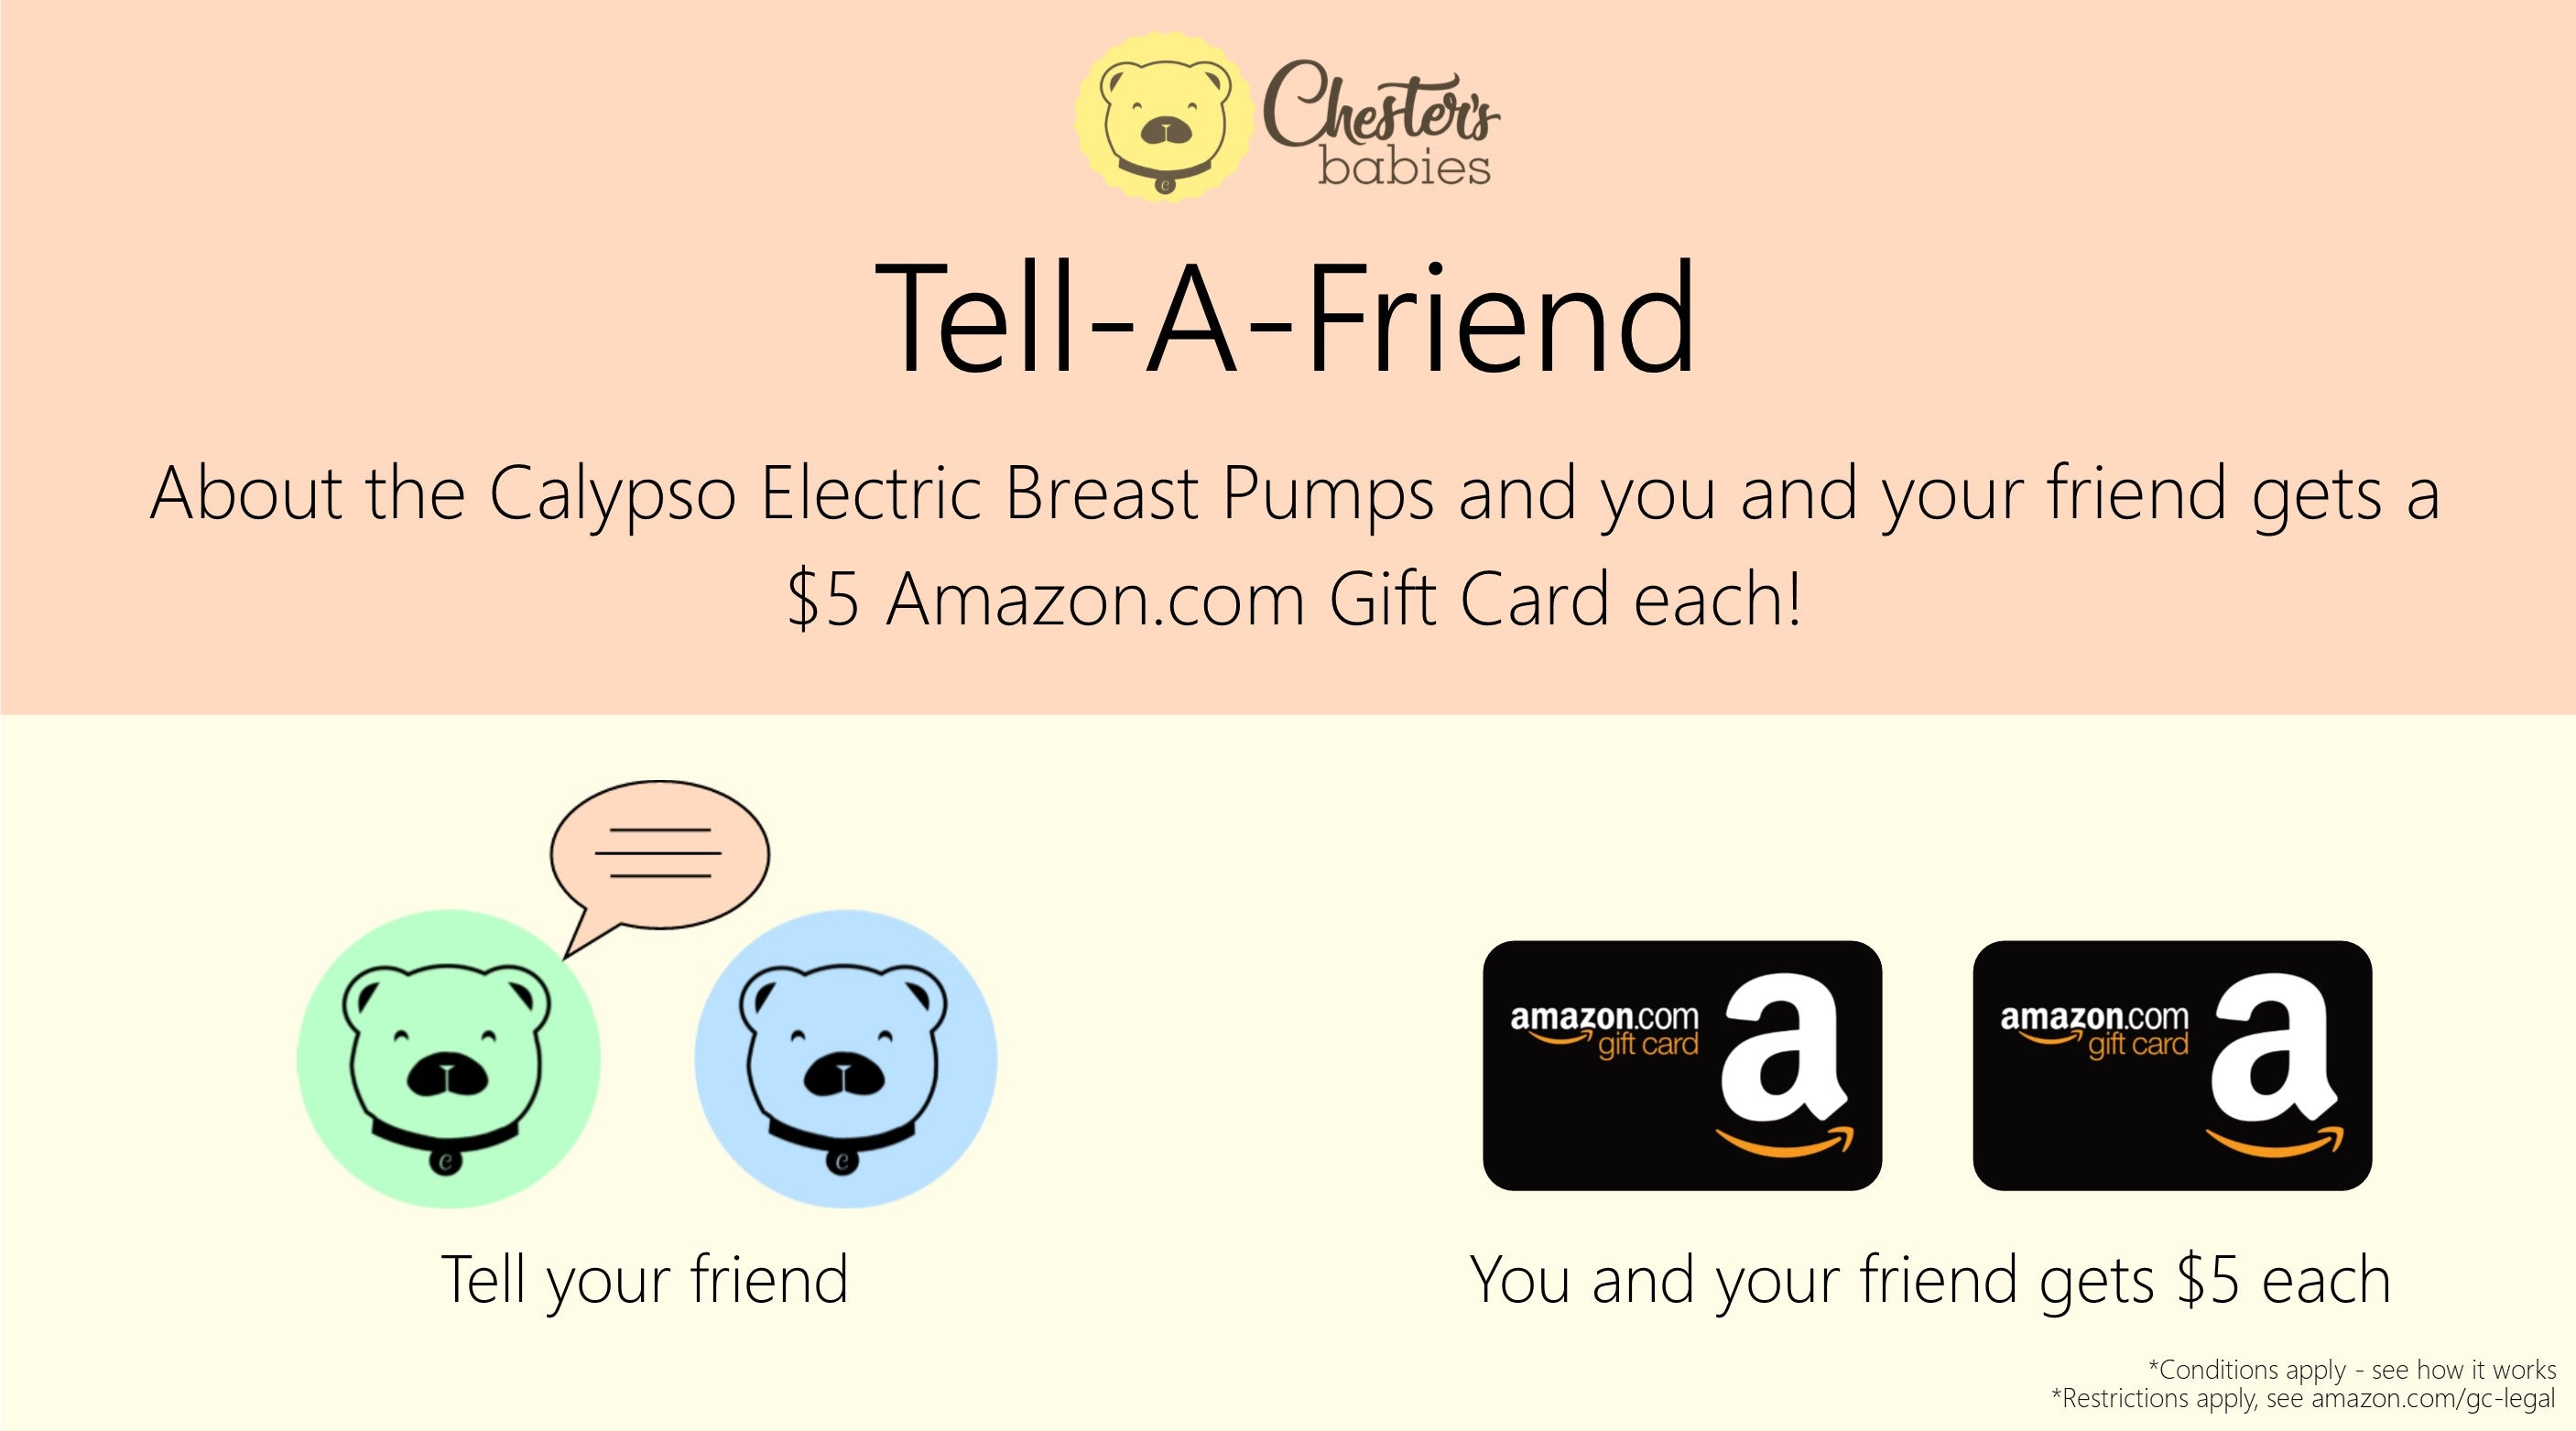 Tell-A-Friend and get a $5 Amazon.com Gift Card each!